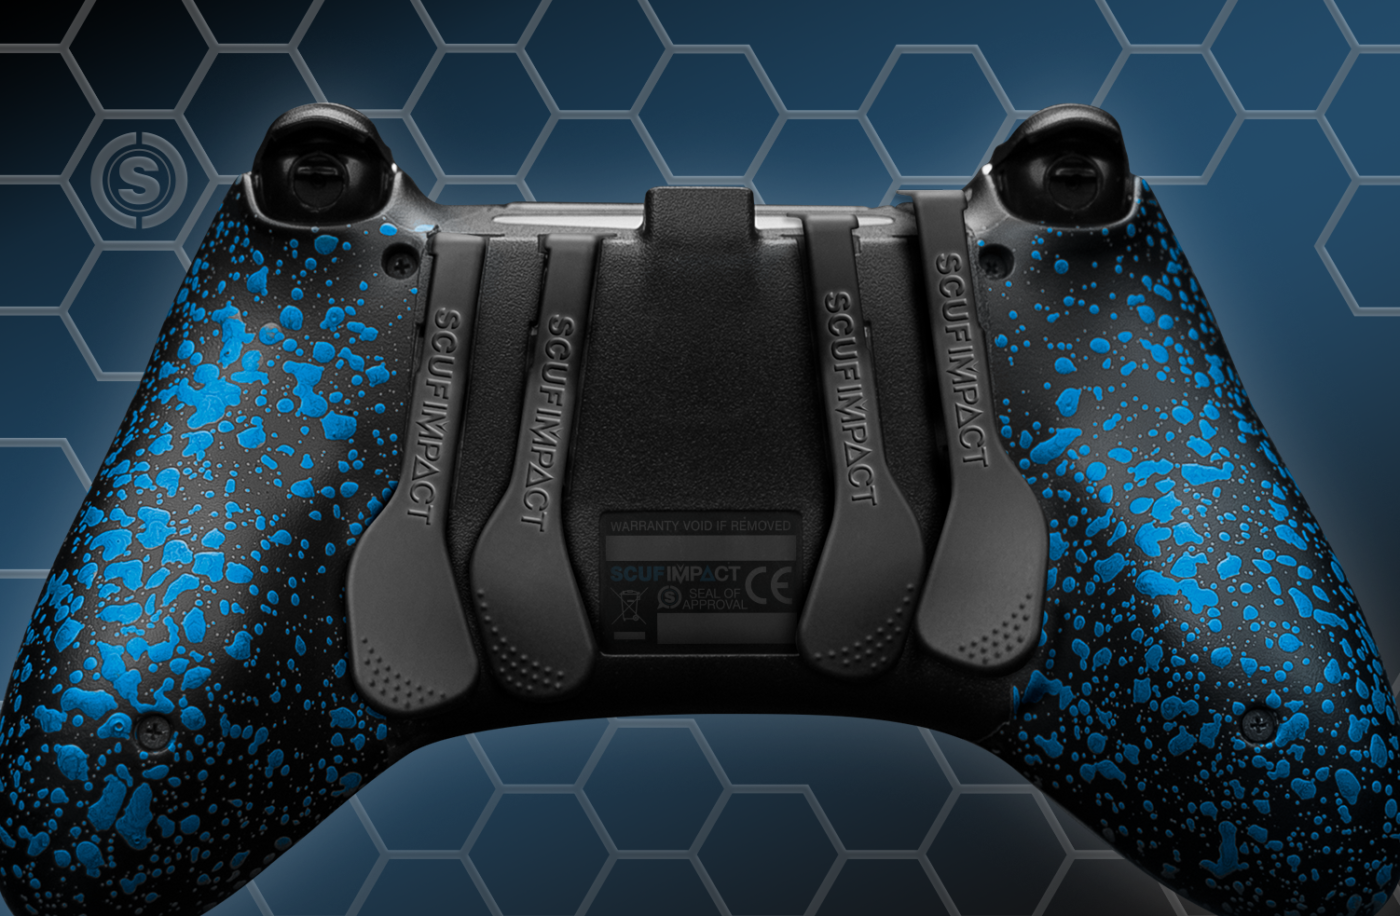 Scuf Impact & Scuf Infinity 4PS Pro - We Review Scuf Gaming's Latest PlayStation 4 Controllers